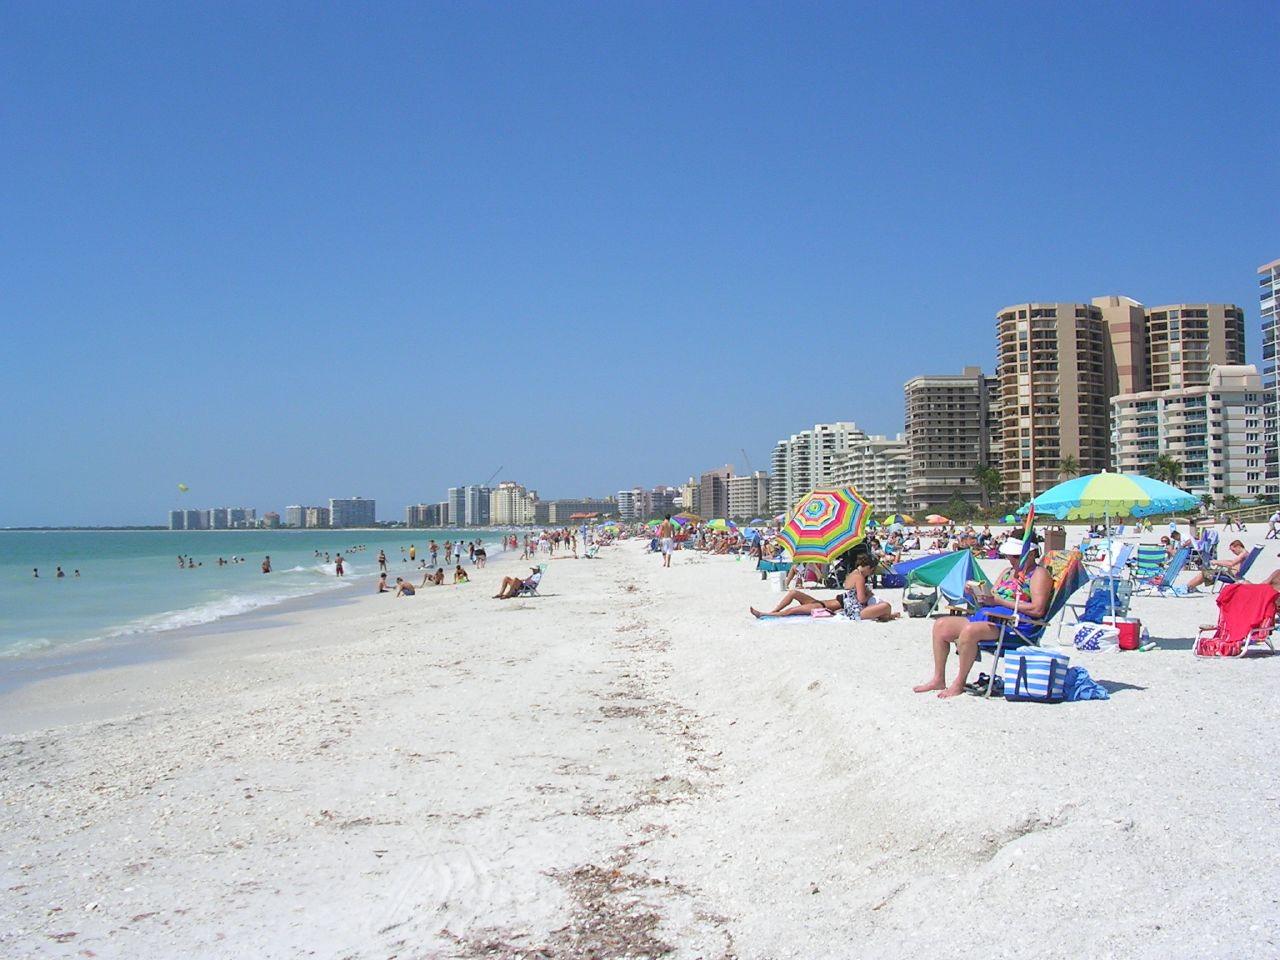 marco island florida map with 460045994 on Marco Islands Tigertail Beach additionally Cheap Flights To Pompano Beach d9459 in addition Watersports also Top Reasons To Move To Estero furthermore Bonita Springs.